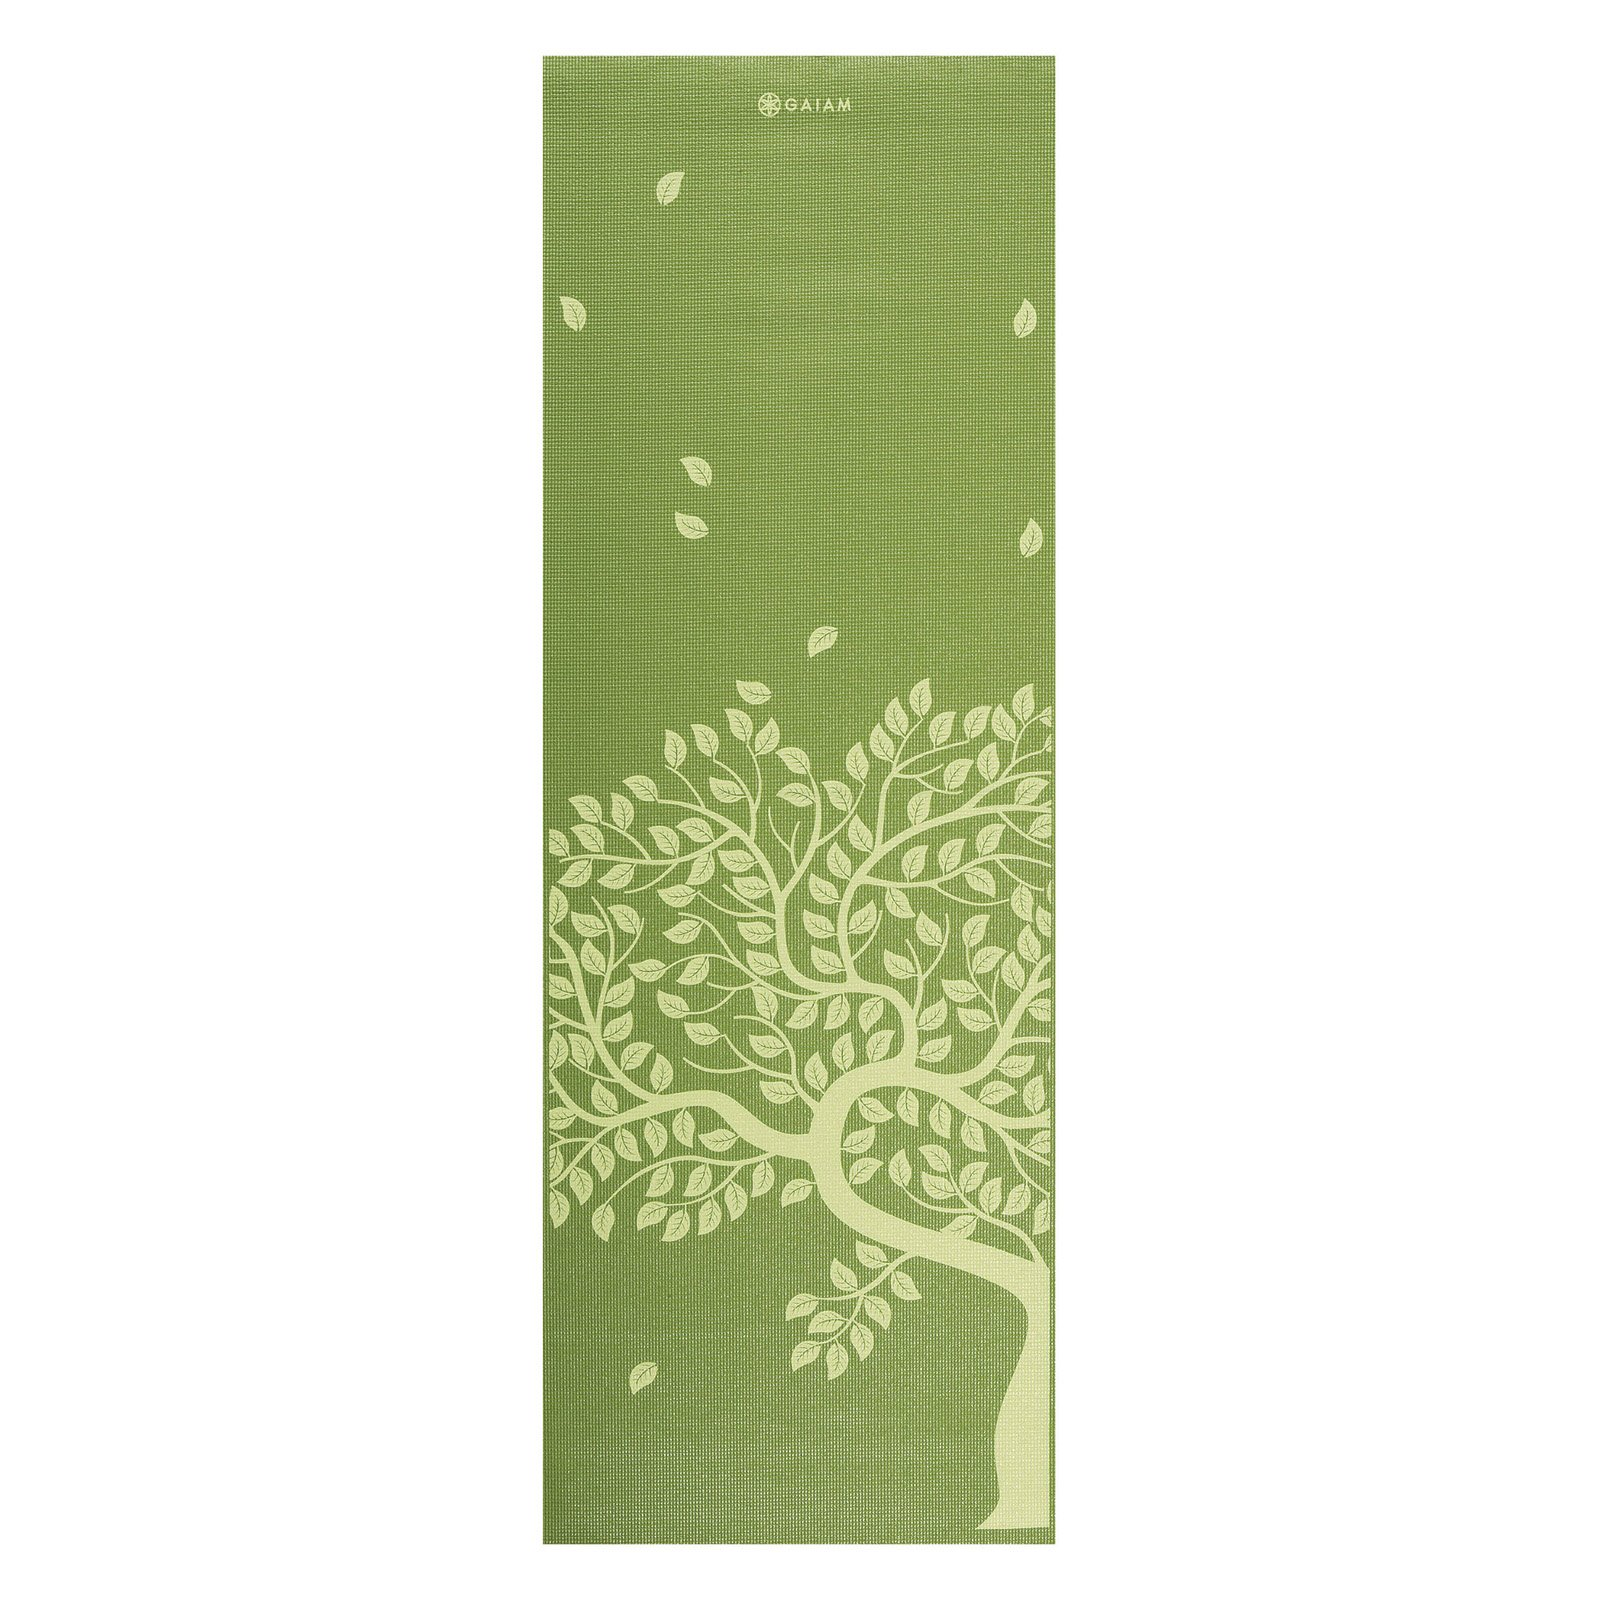 Gaiam Print Yoga Mat, Pink Marrakesh, 4mm by FIT FOR LIFE